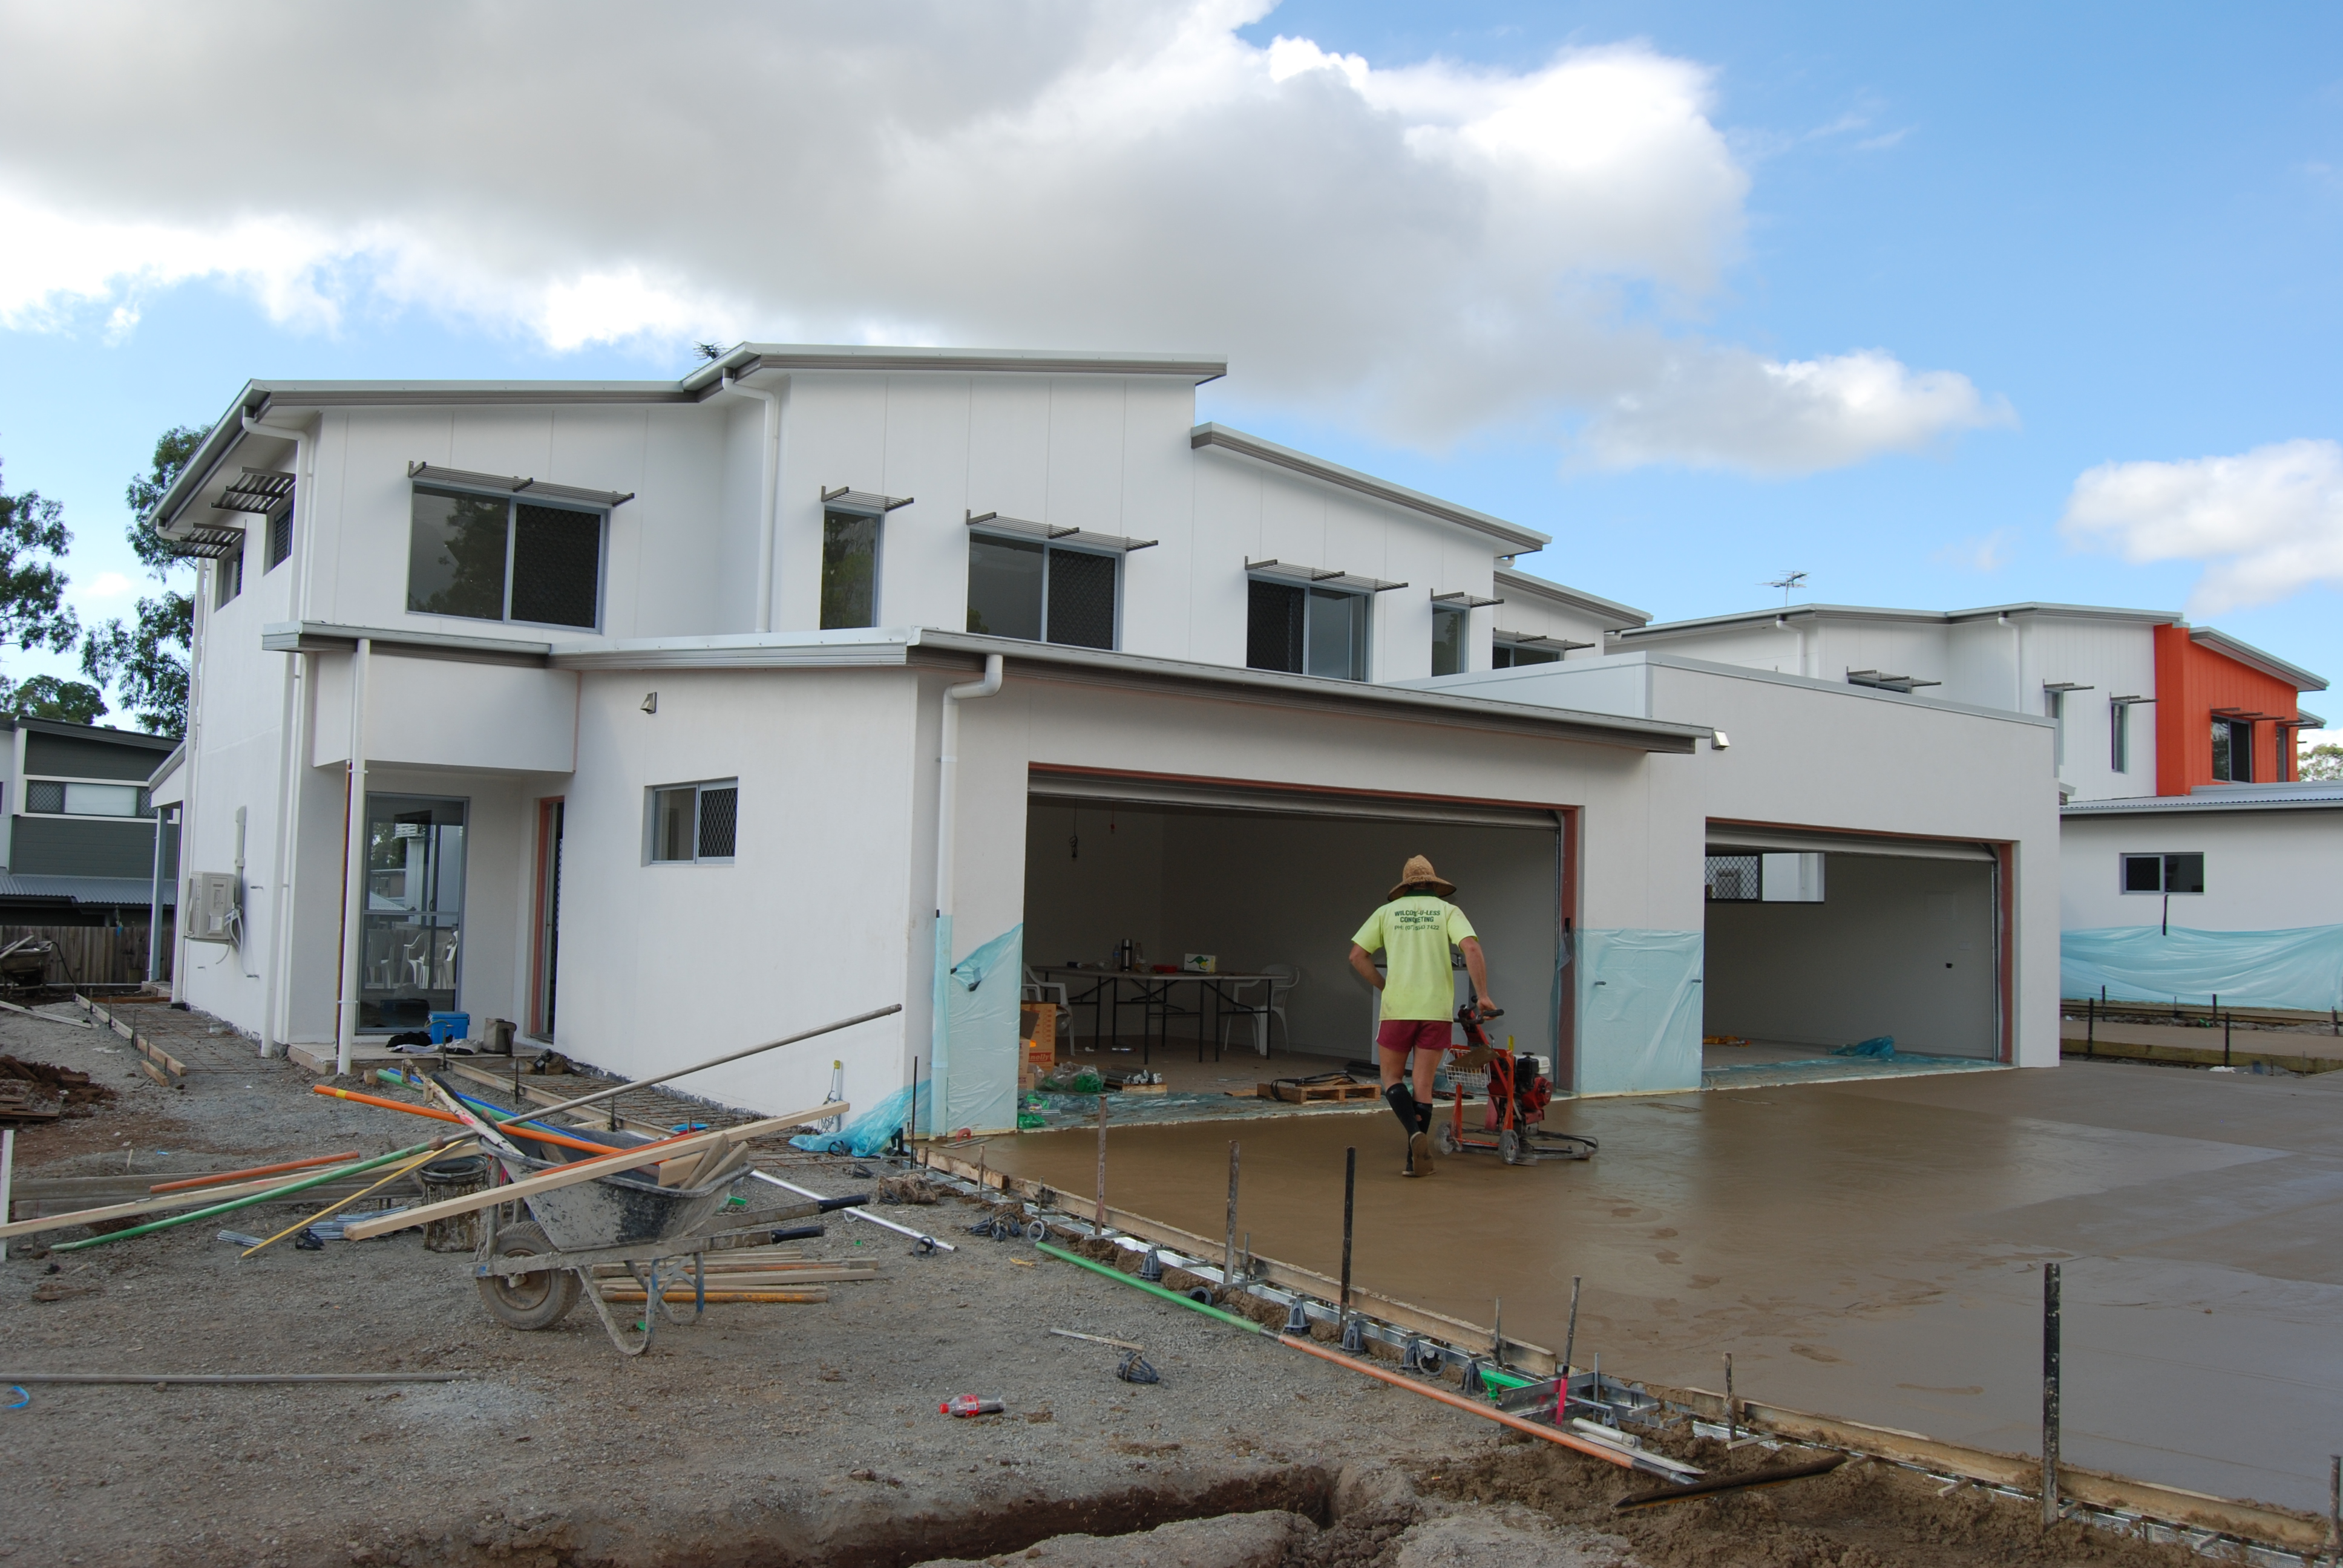 Work contiuned on the townhouse development this week, with the driveways started to be laid